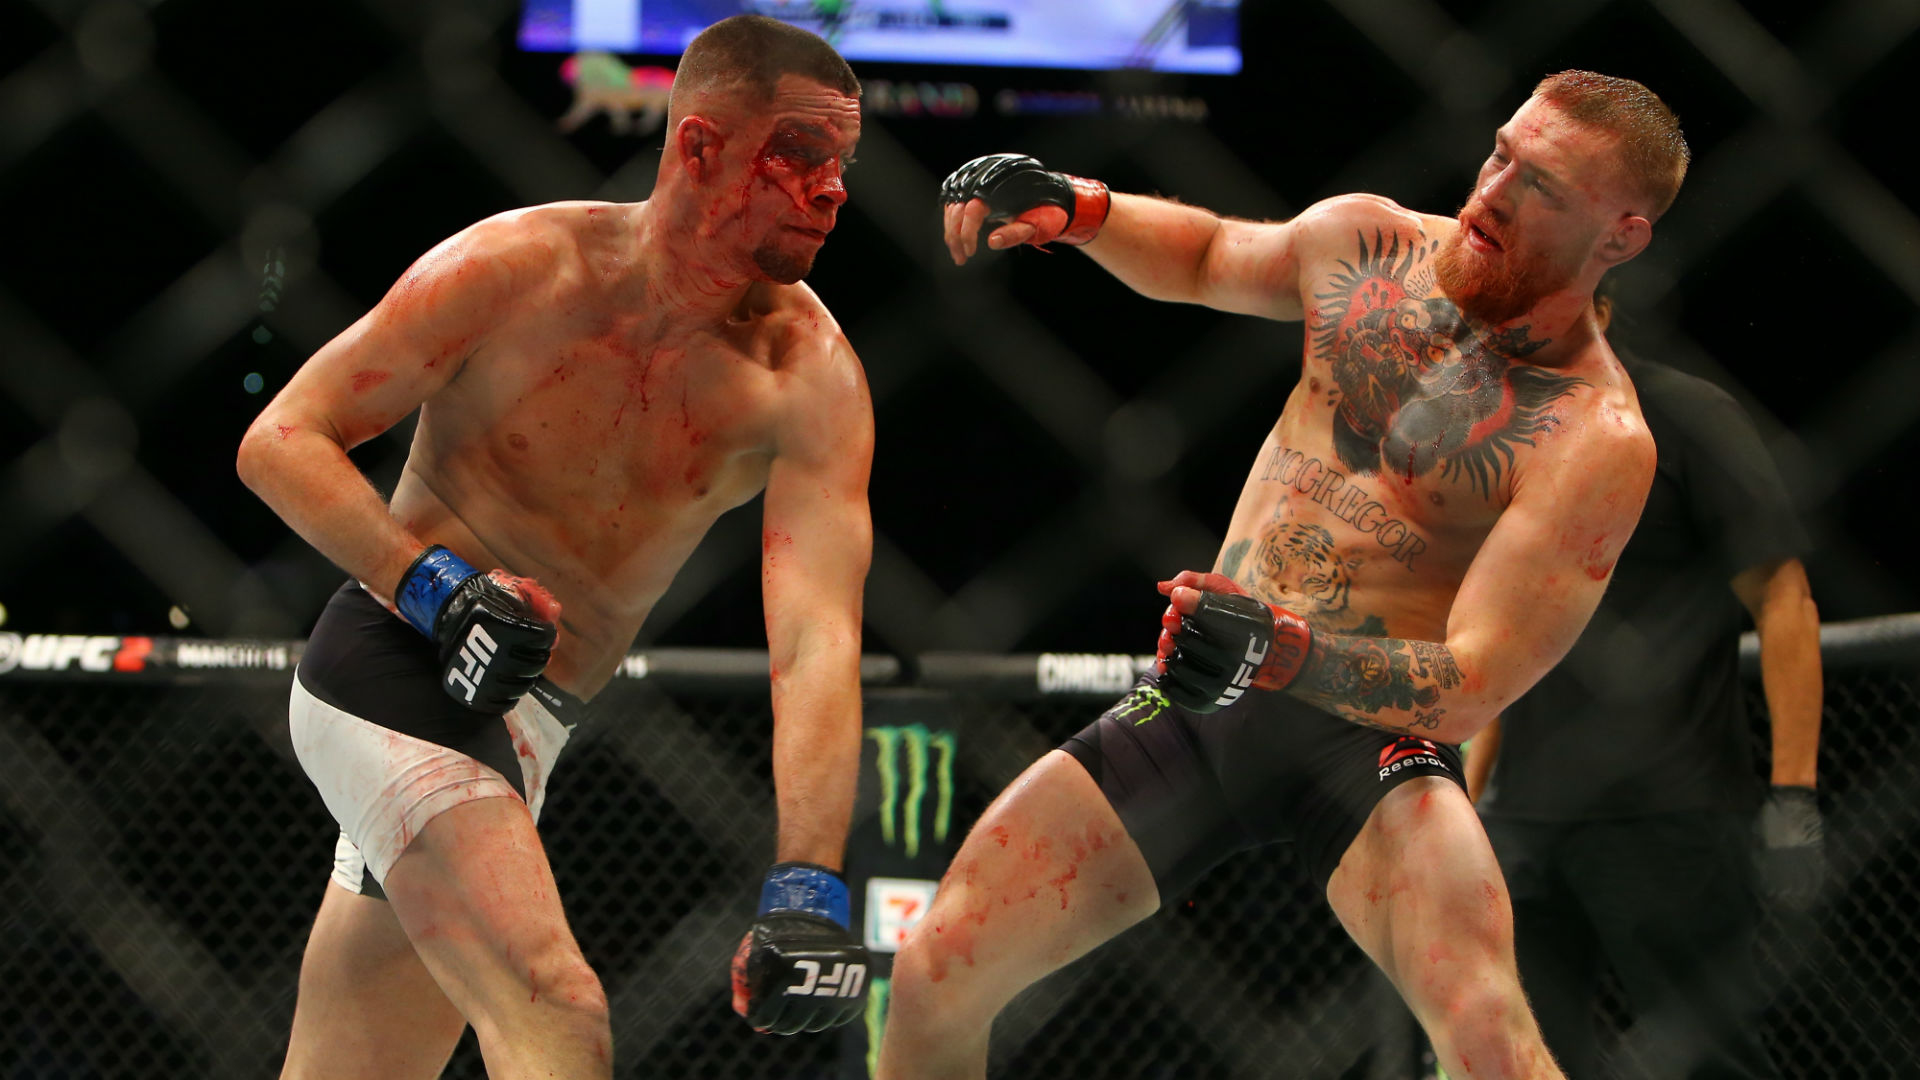 Nate Diaz lands a punch on Conor McGregor during their UFC 196 fight. (Getty)